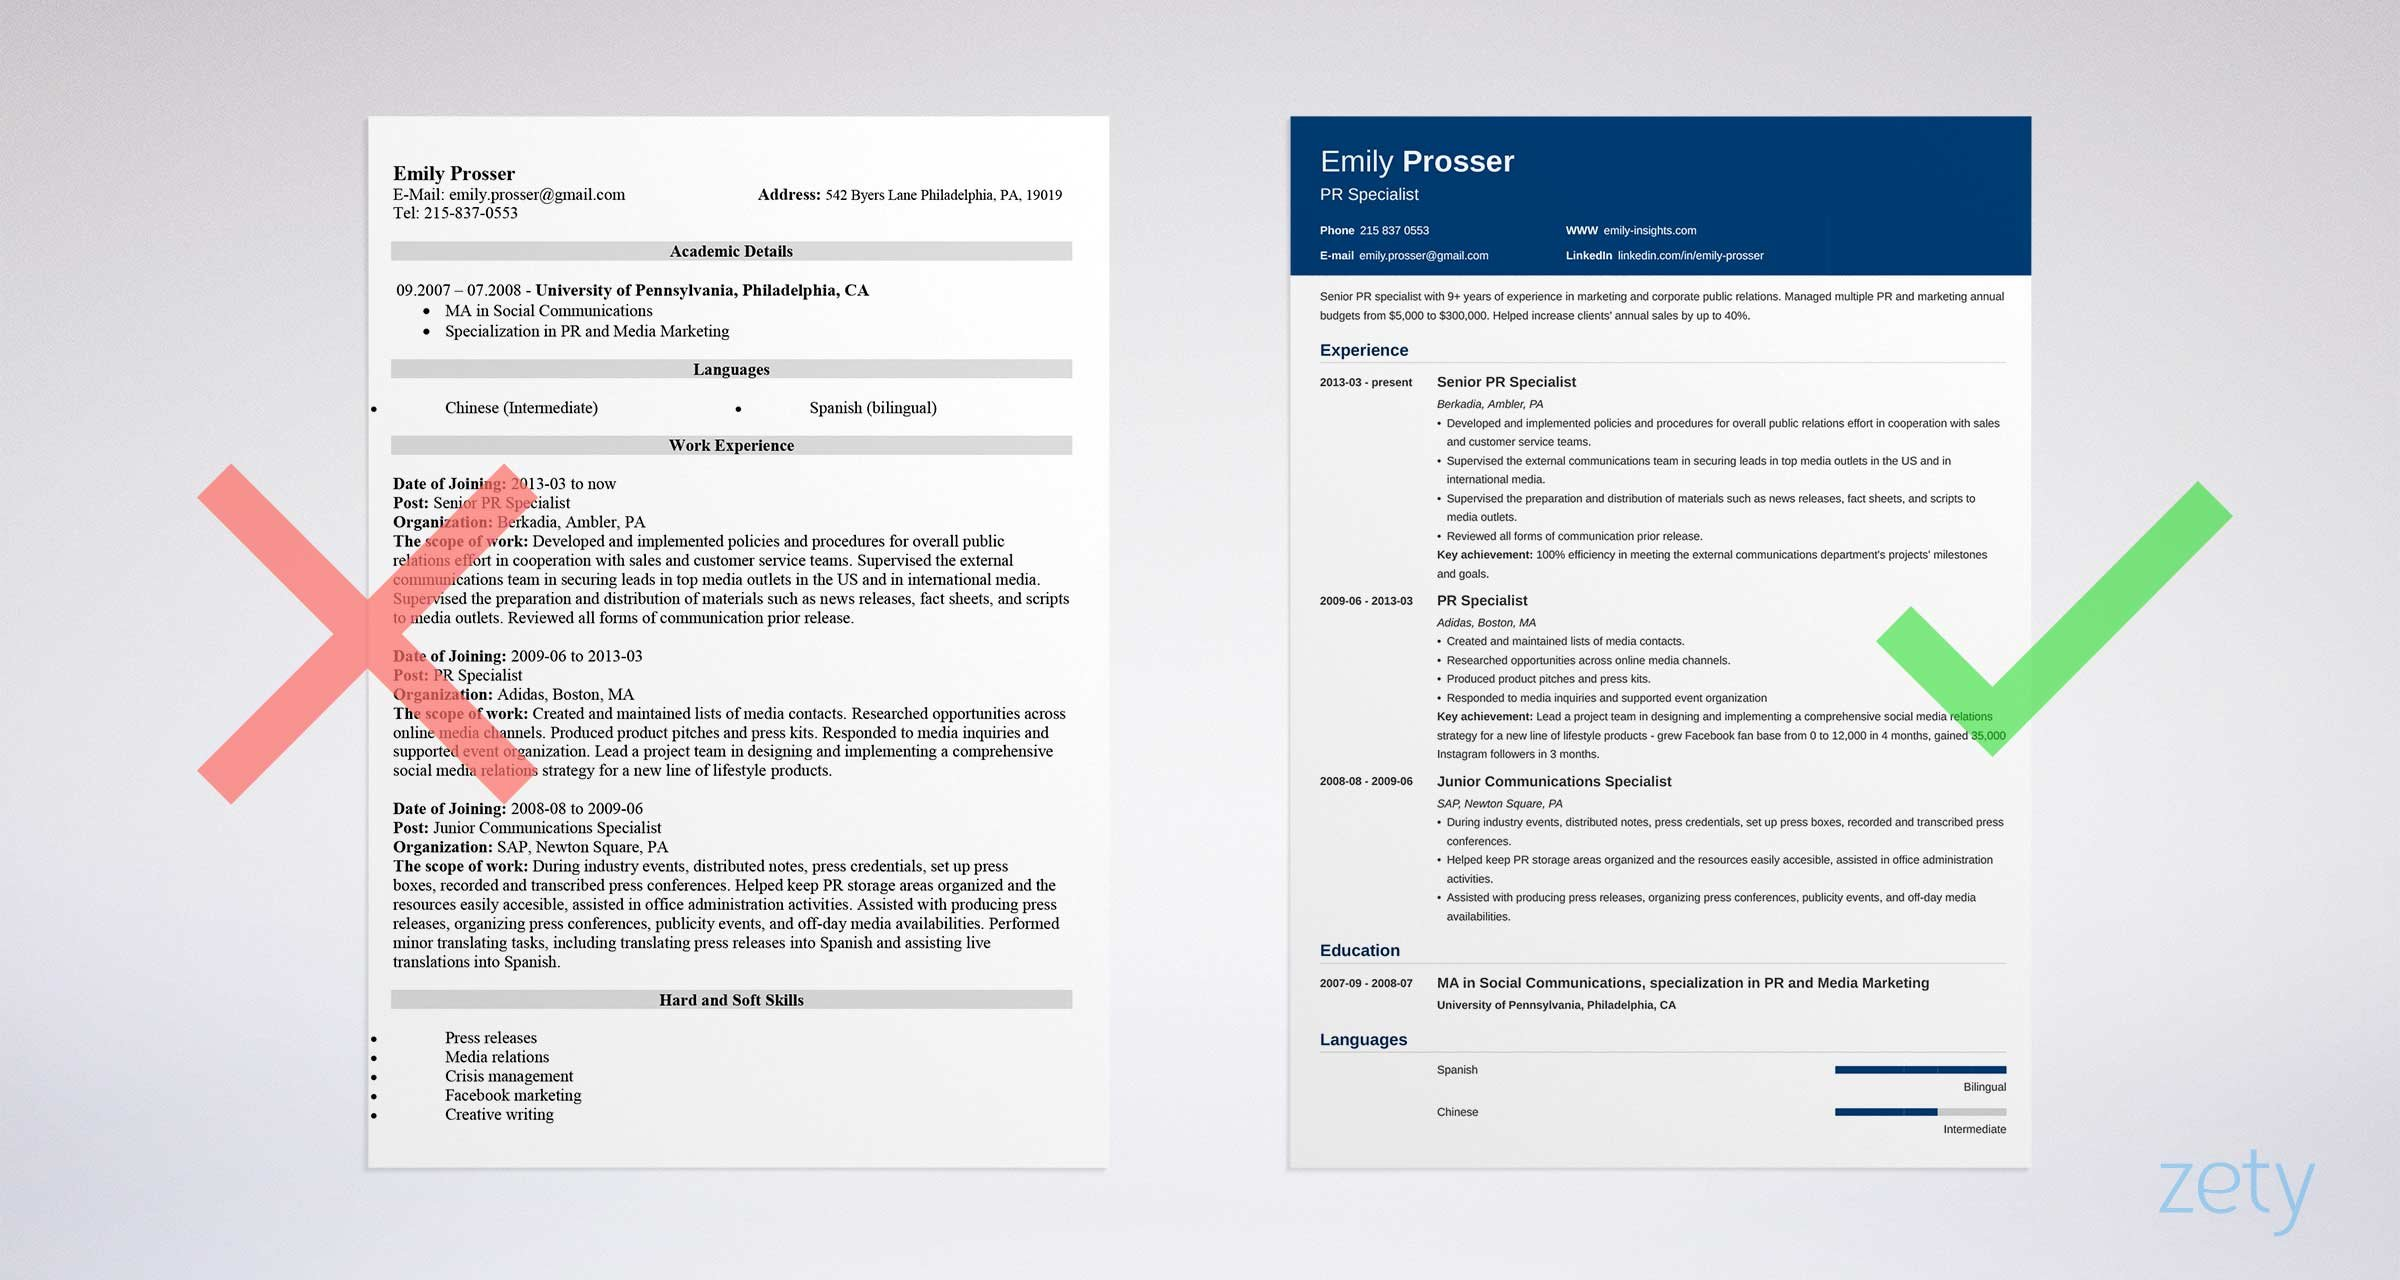 Resume Design Templates | 15 Resume Design Ideas Inspirations Templates How To Tutorial